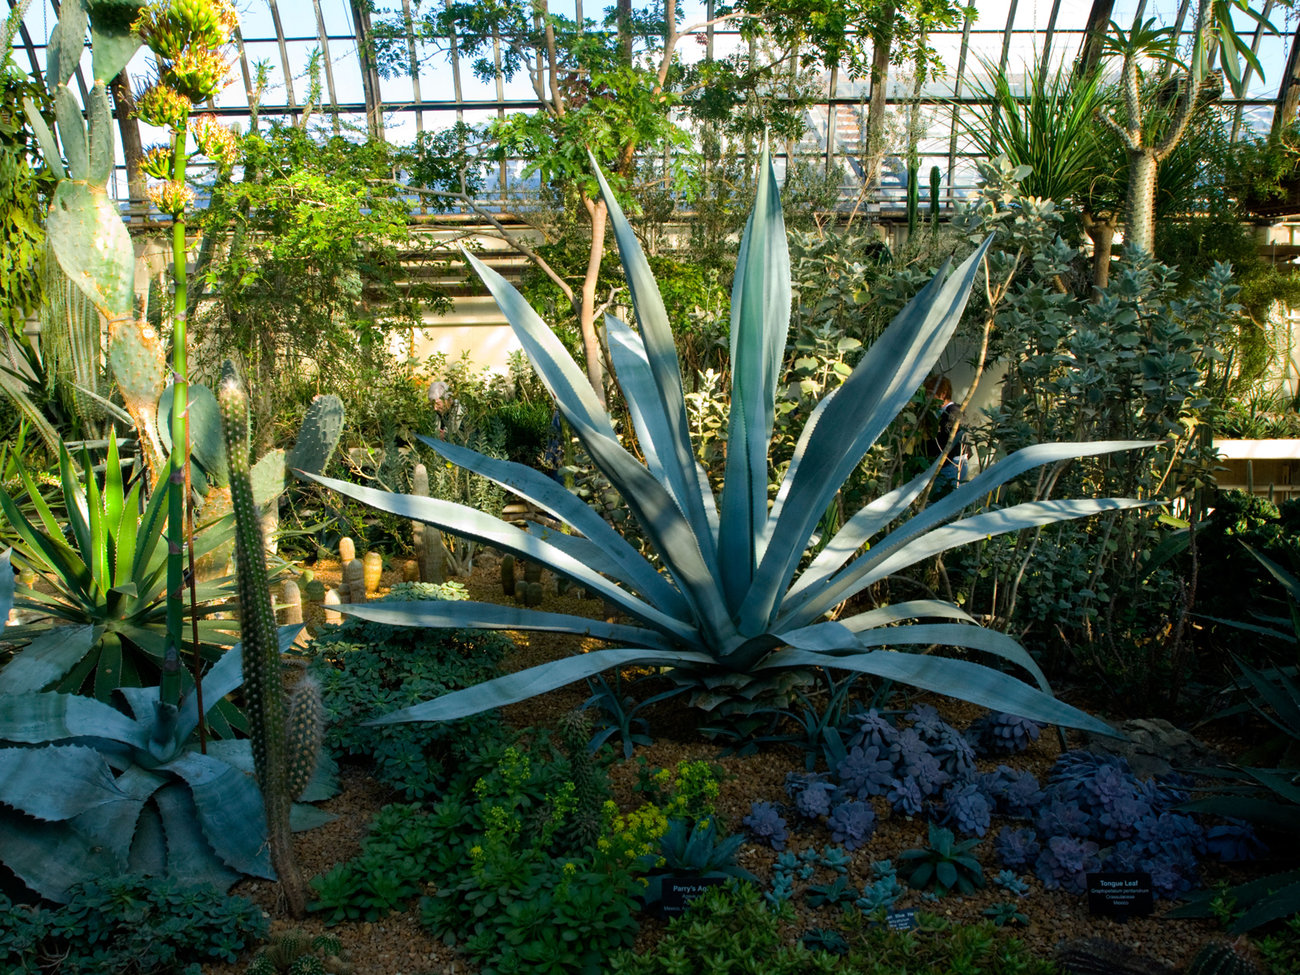 Garfield Park Conservatory in Chicago